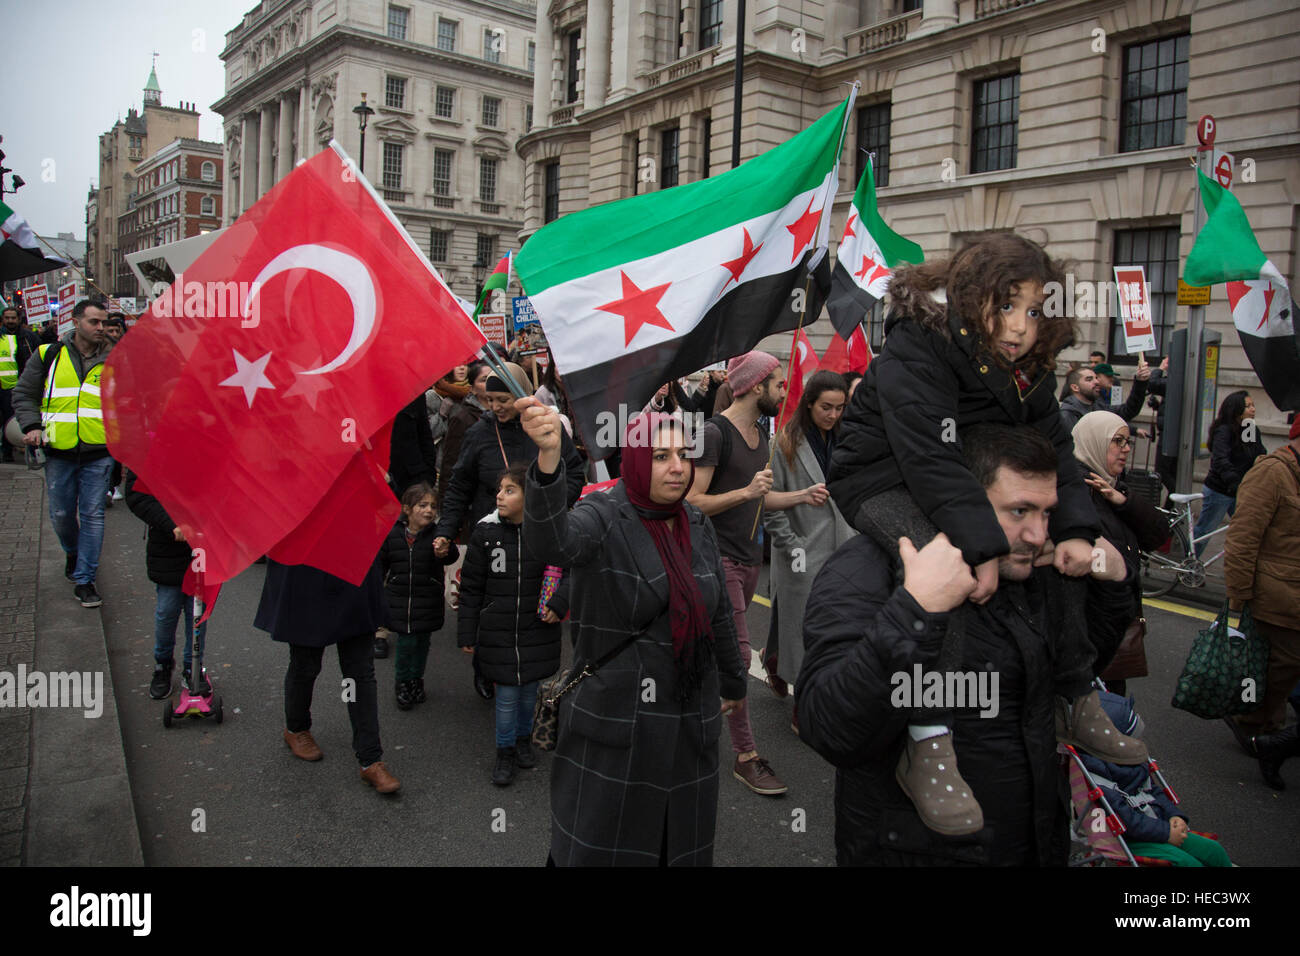 Syria Solidarity Campaign March For Aleppo on December 17th 2016 in London, England, United Kingdom. Protesters - Stock Image